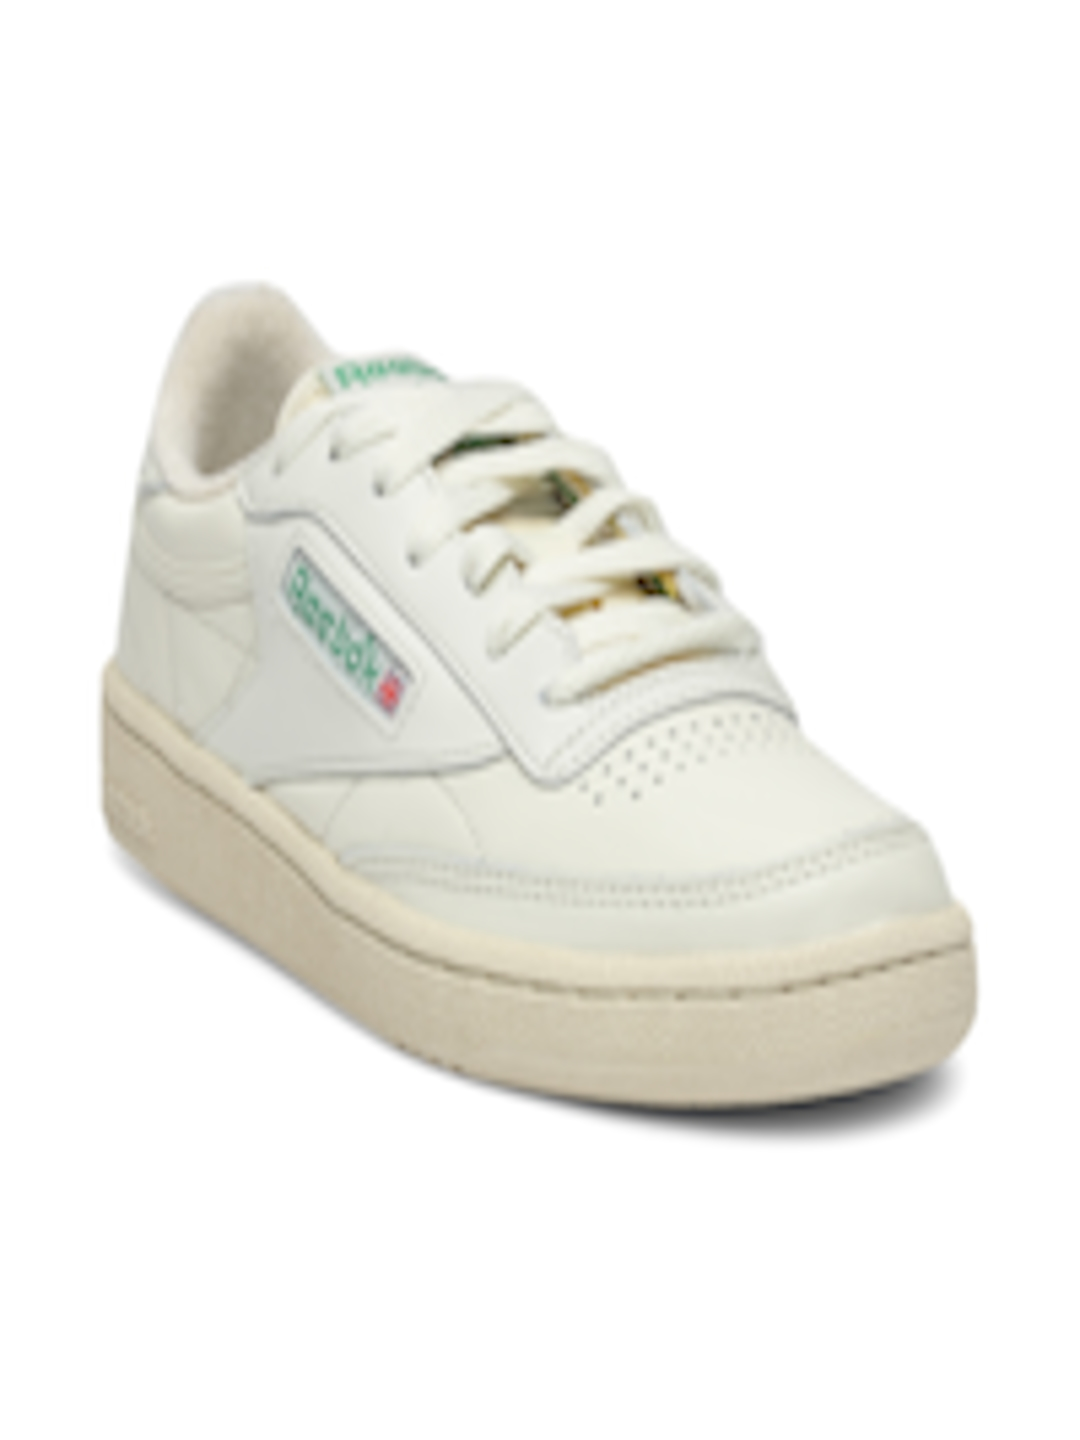 Buy Reebok Classic Women Off White Club C 85 Vintage Leather Sneakers -  Casual Shoes for Women 2003423  e2f3fbf89